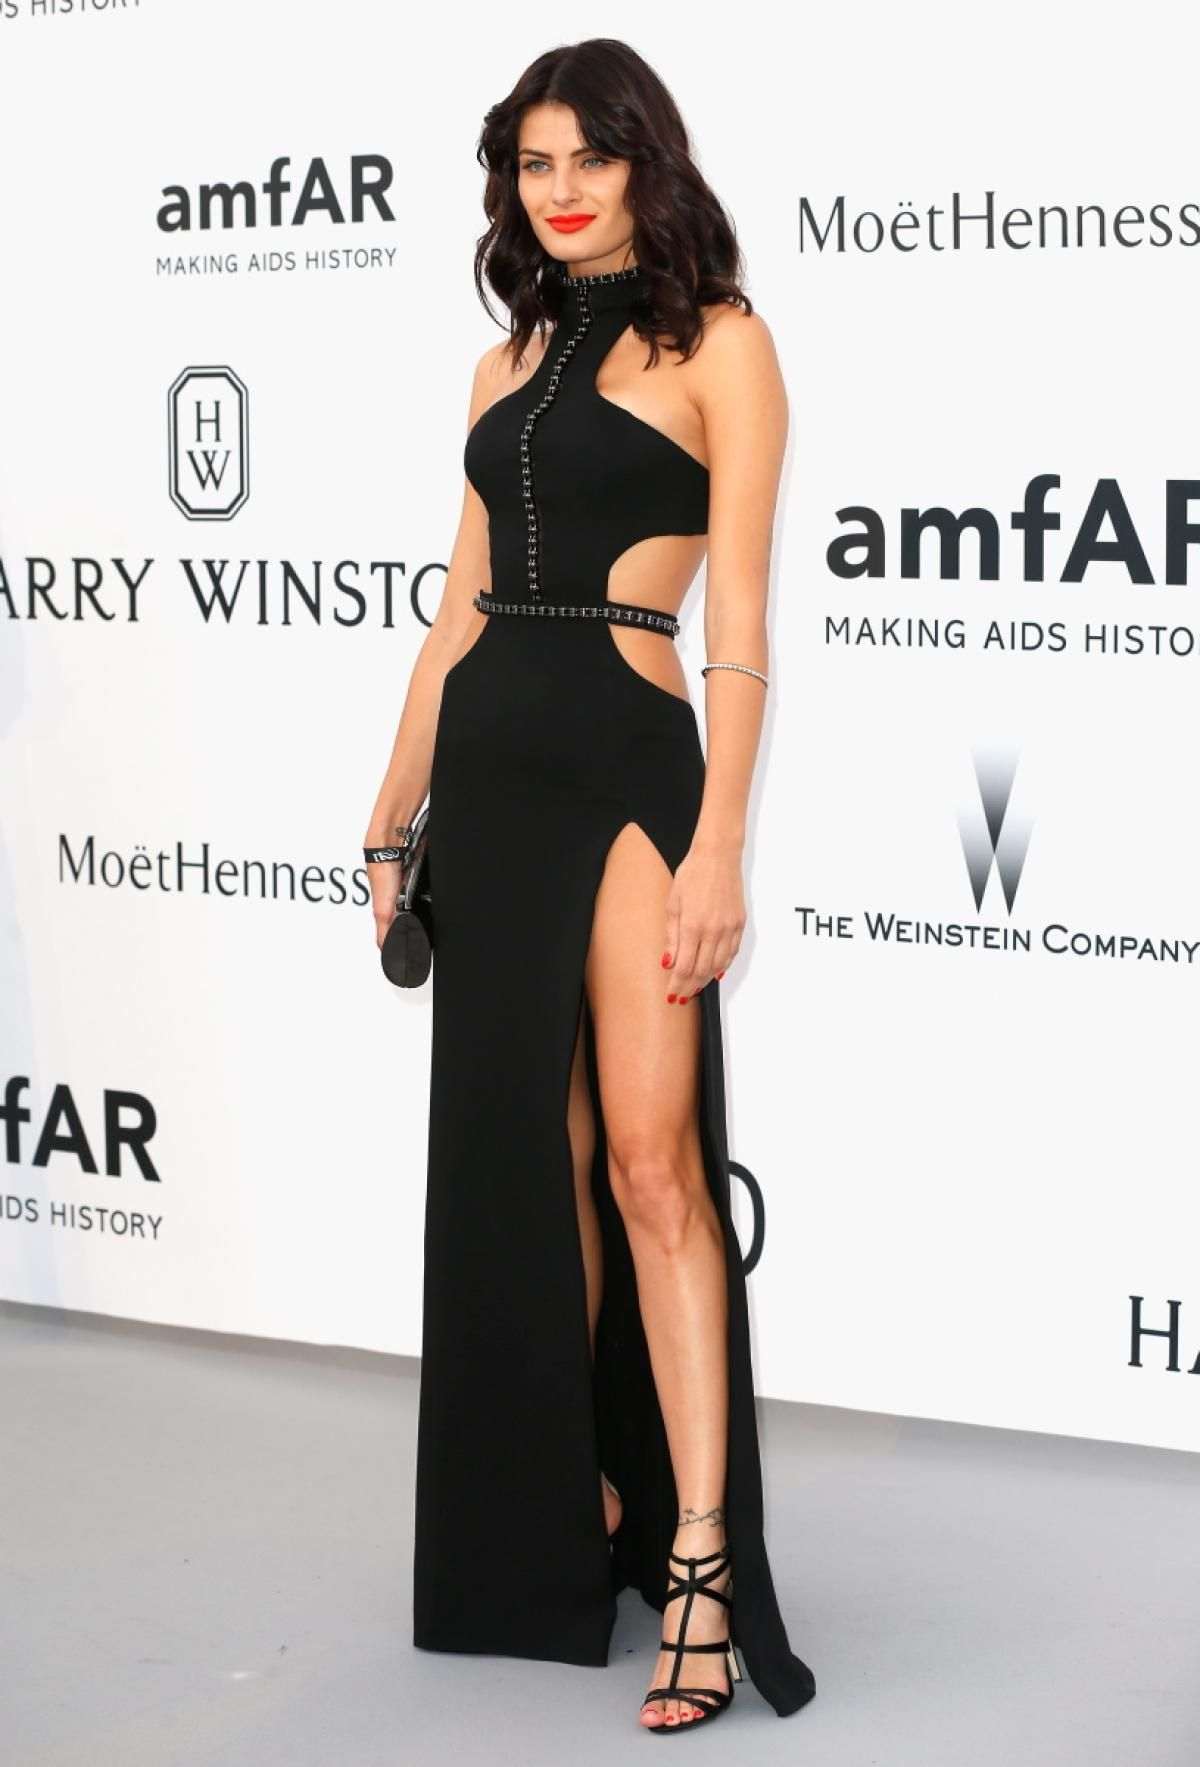 isabeli-fontana-at-amfar-s-2015-cinema-against-aids-gala-in-cap-d-antibes_1